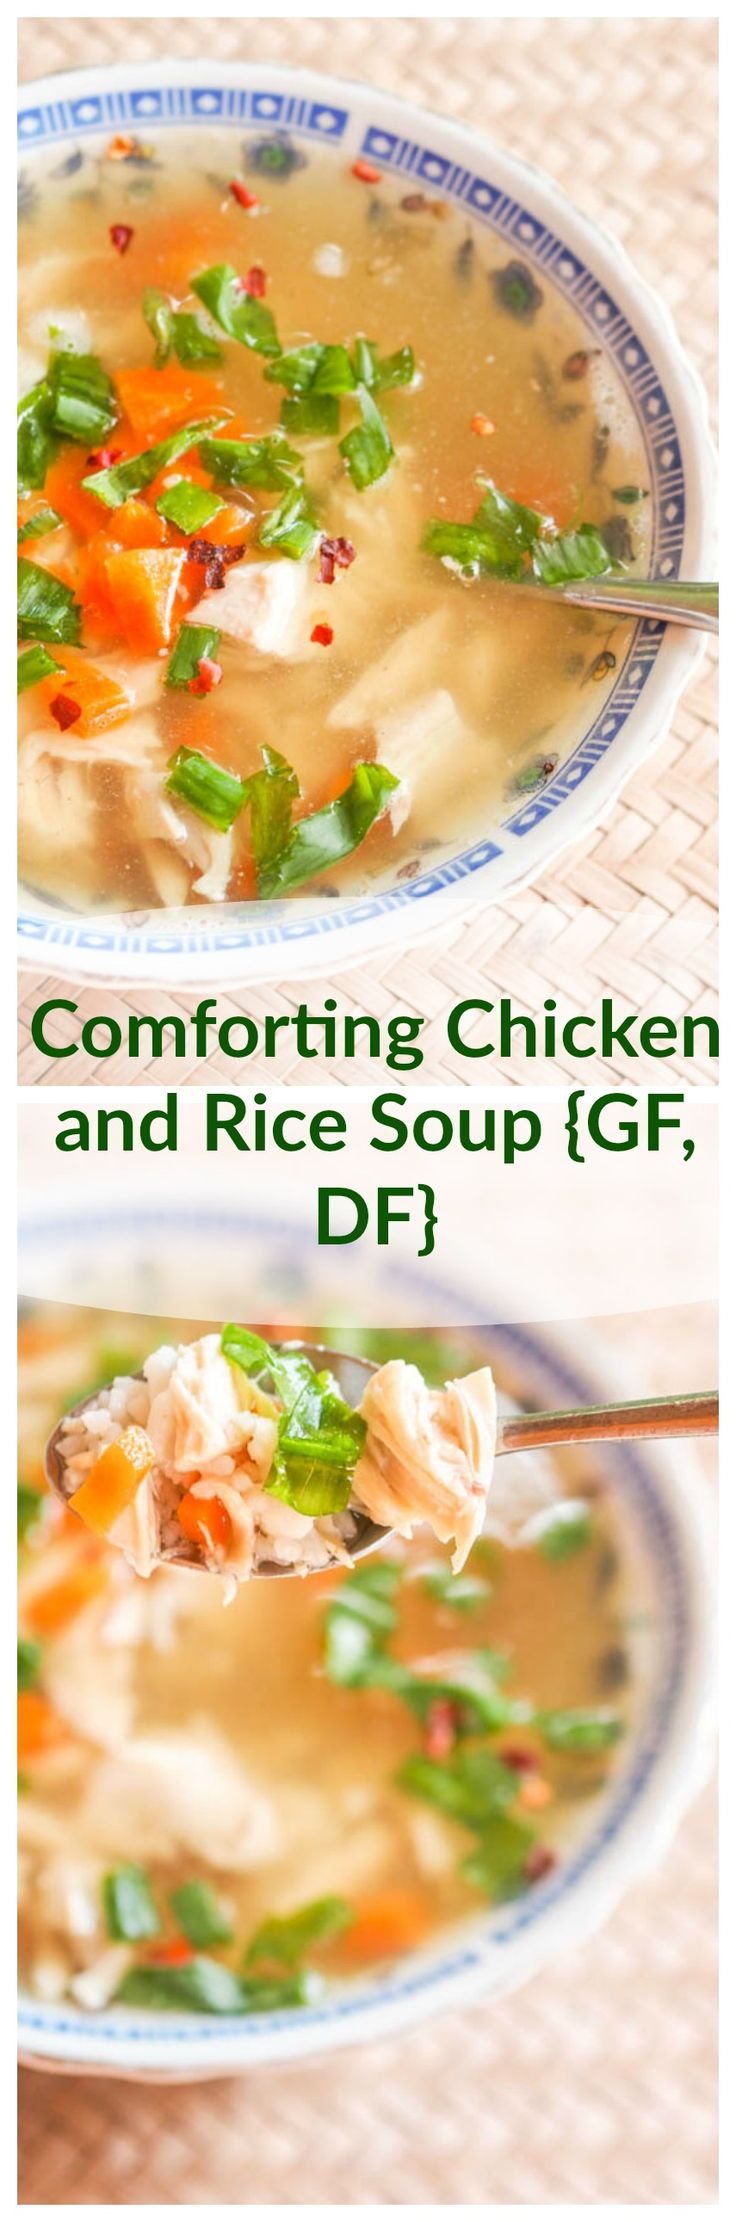 This Chicken and rice soup all starts from a fragrant and flavorful home made chicken broth. That is the star of this recipe and what turns this simple soup into your new favorite comfort meal. Gluten Free and Dairy Free.